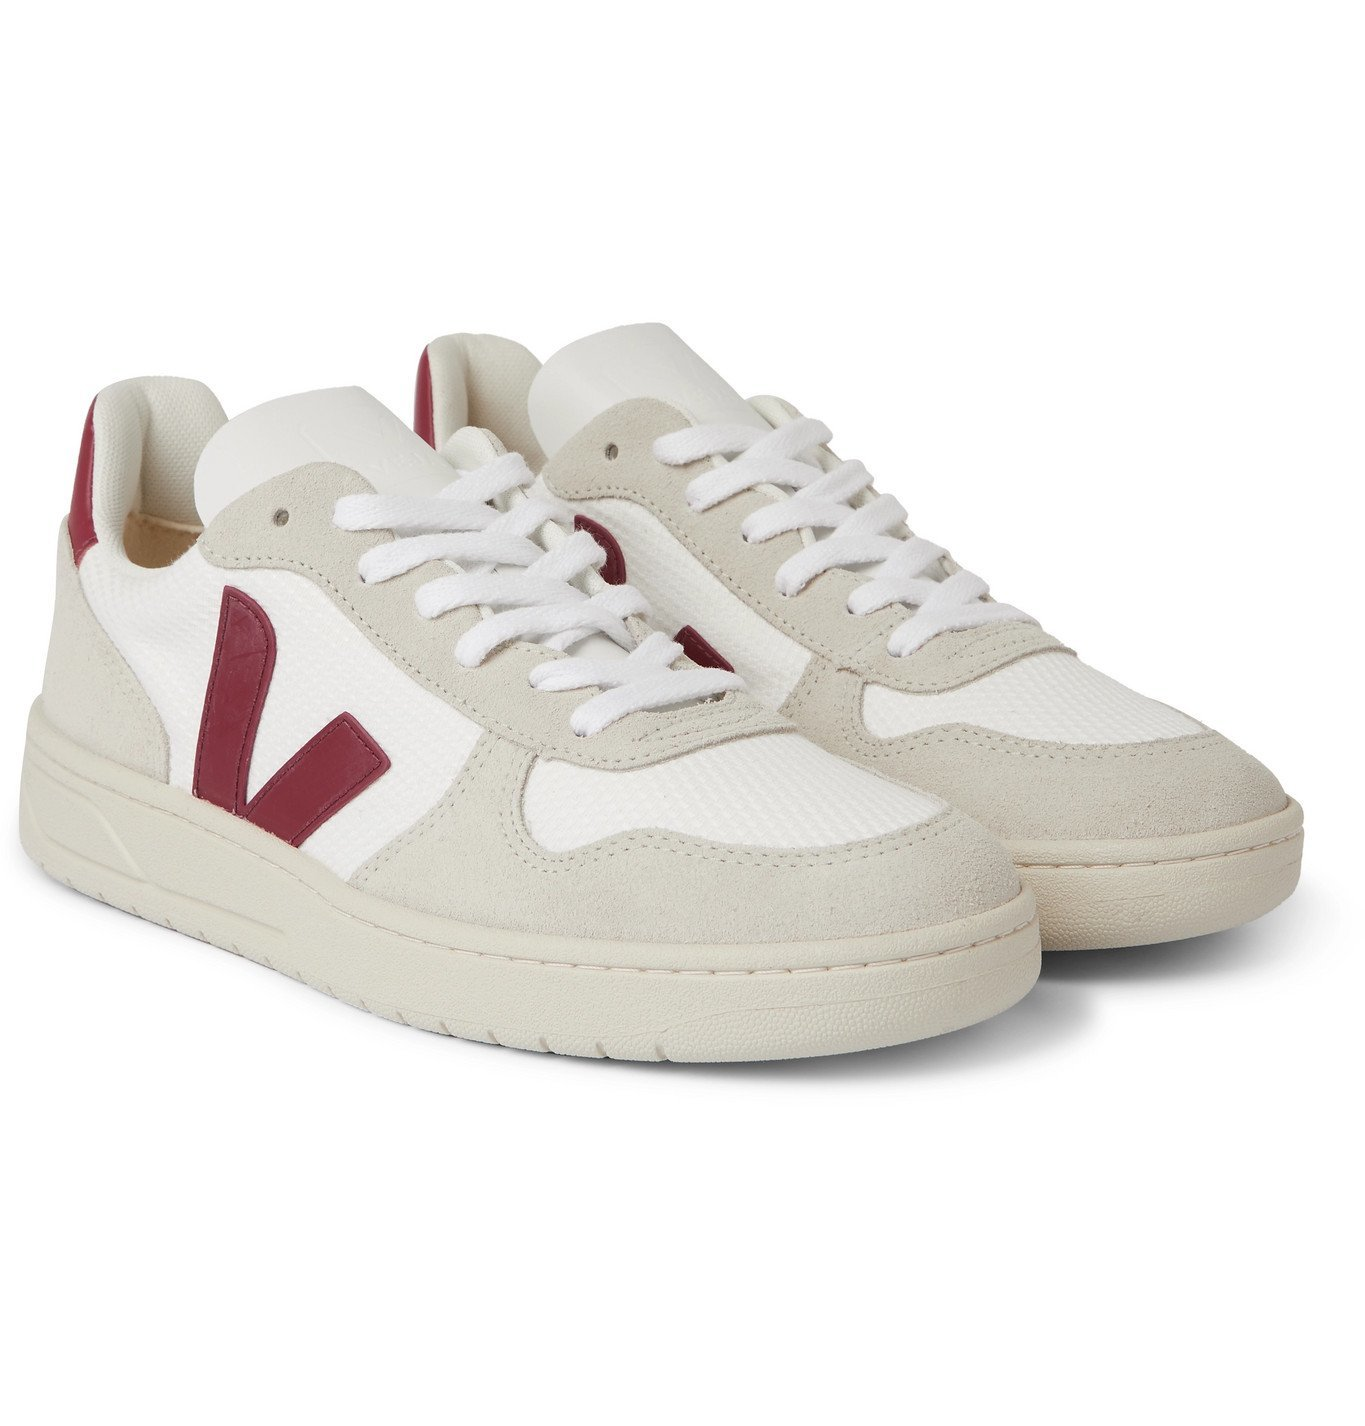 Veja - V-10 Leather and Rubber-Trimmed Suede and B-Mesh Sneakers - White